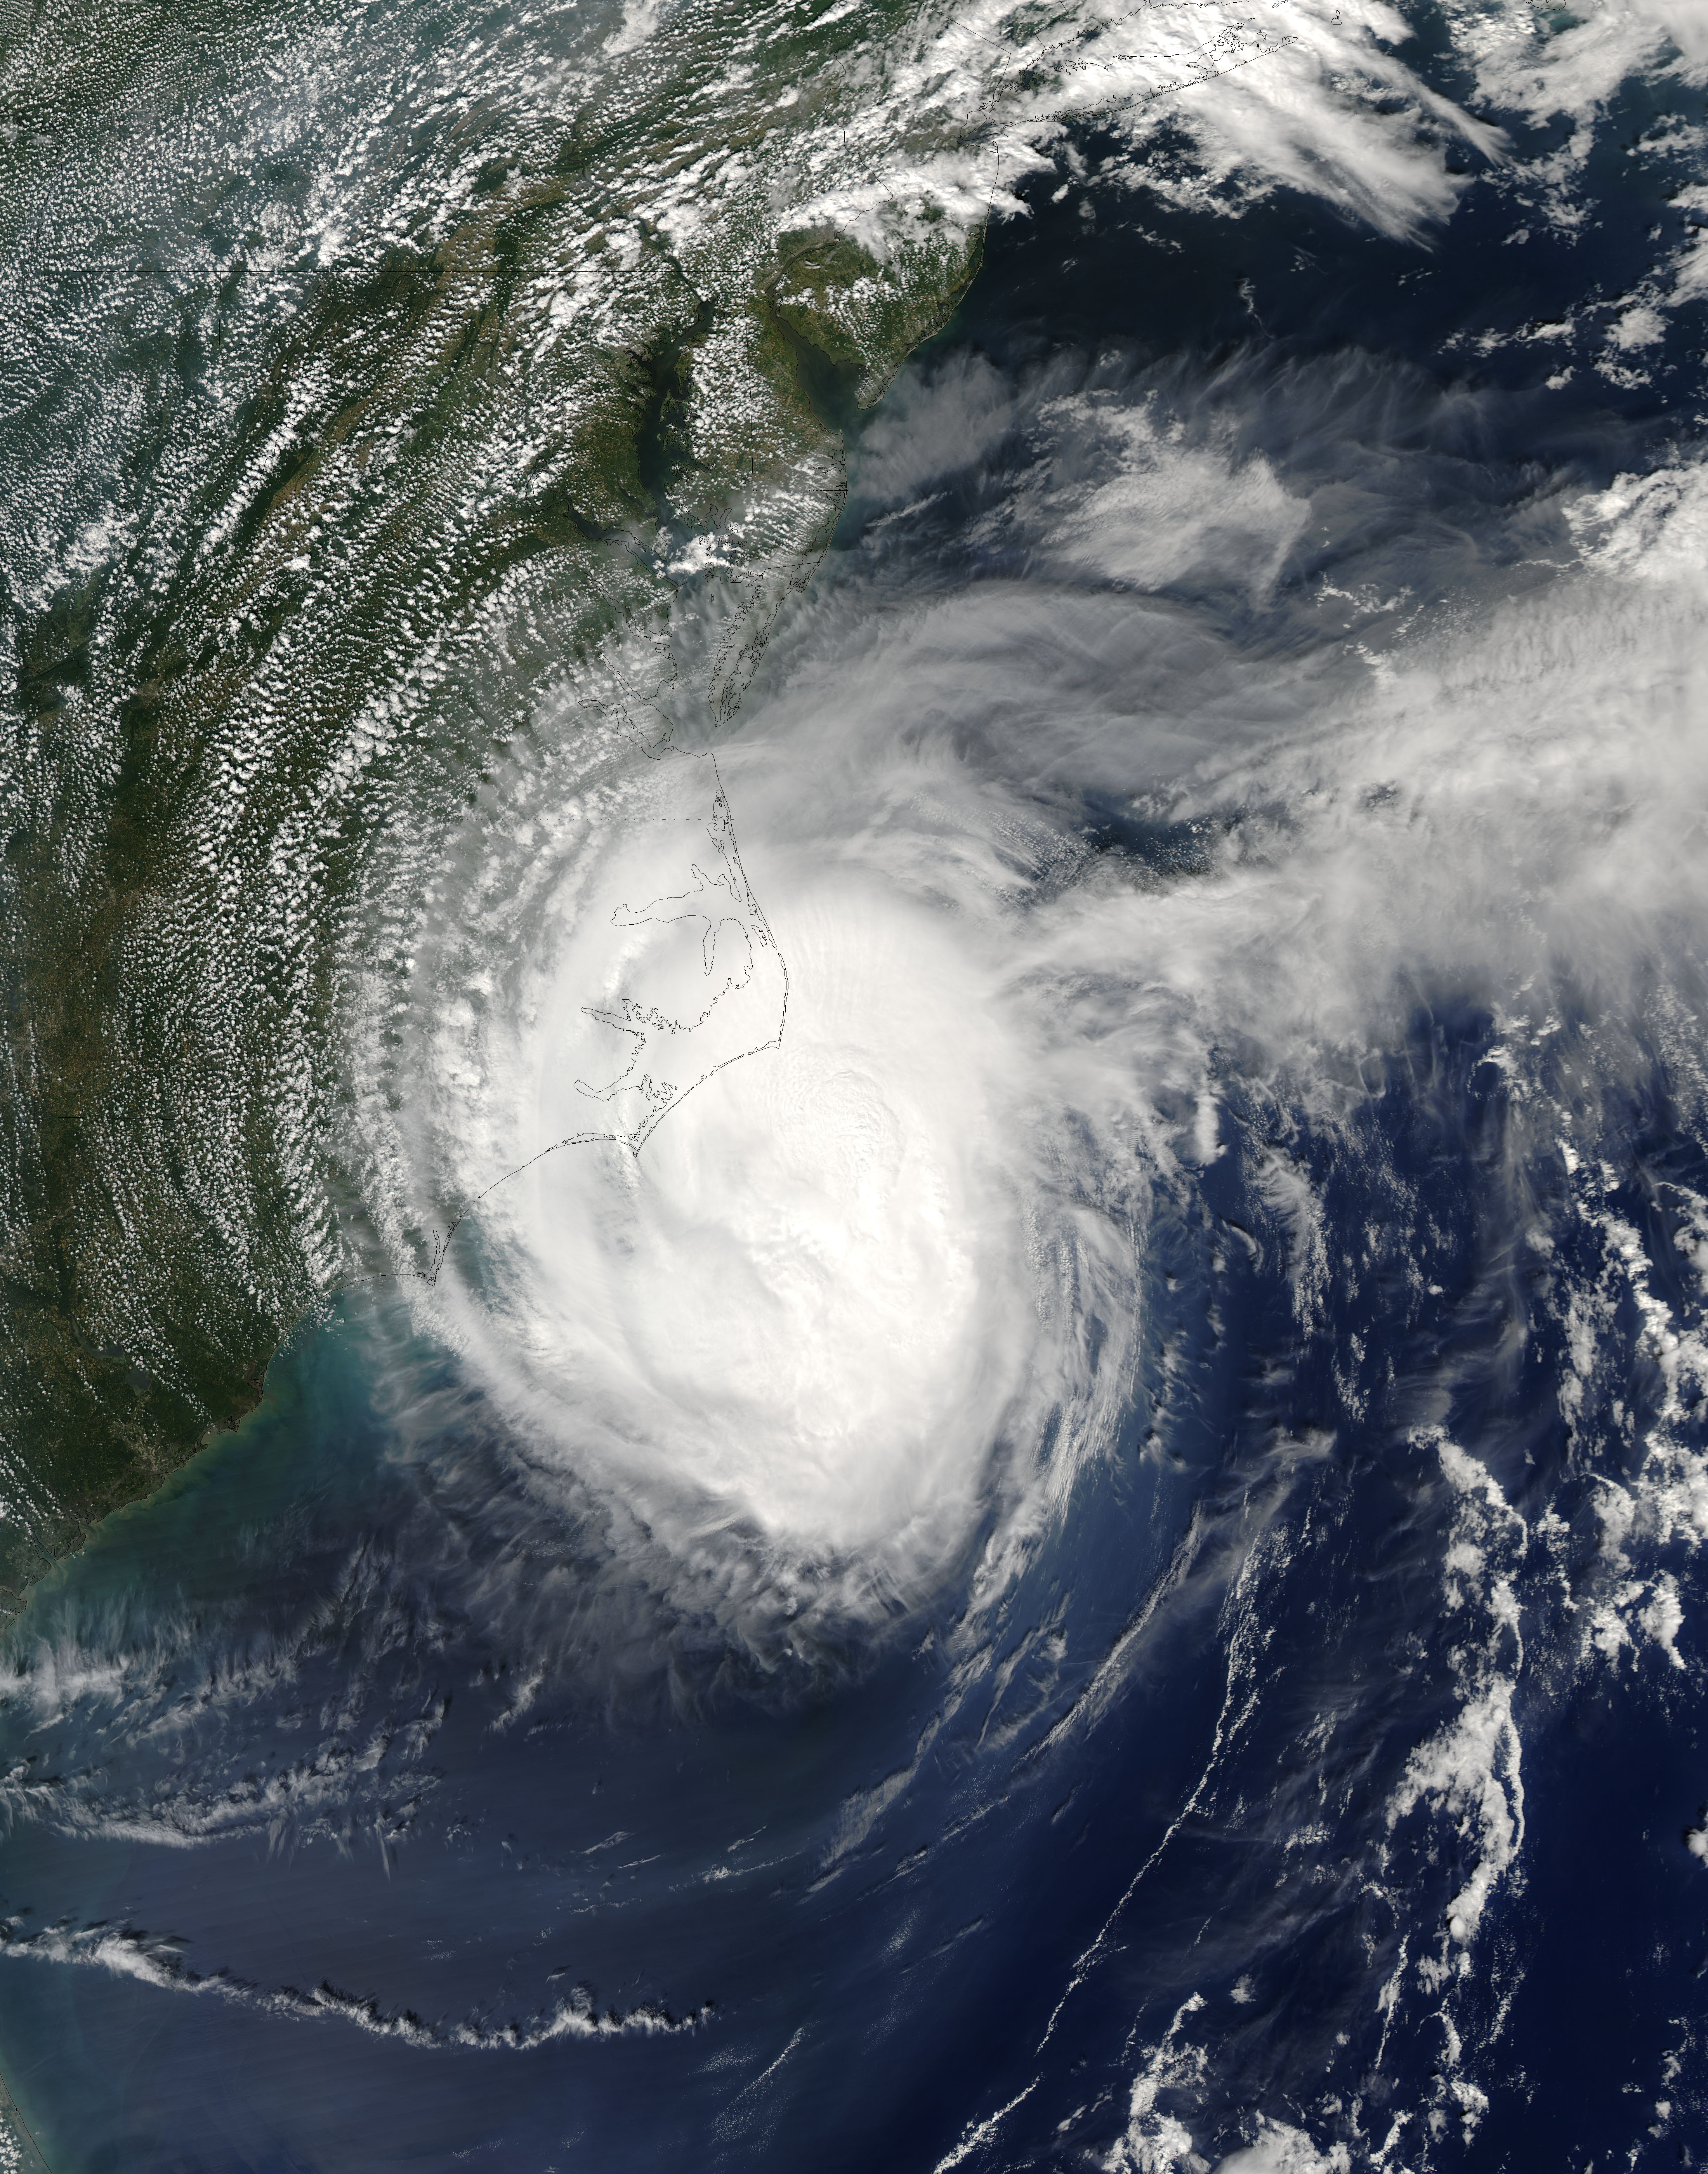 hurricane katrina nasa earth observatory - photo #5